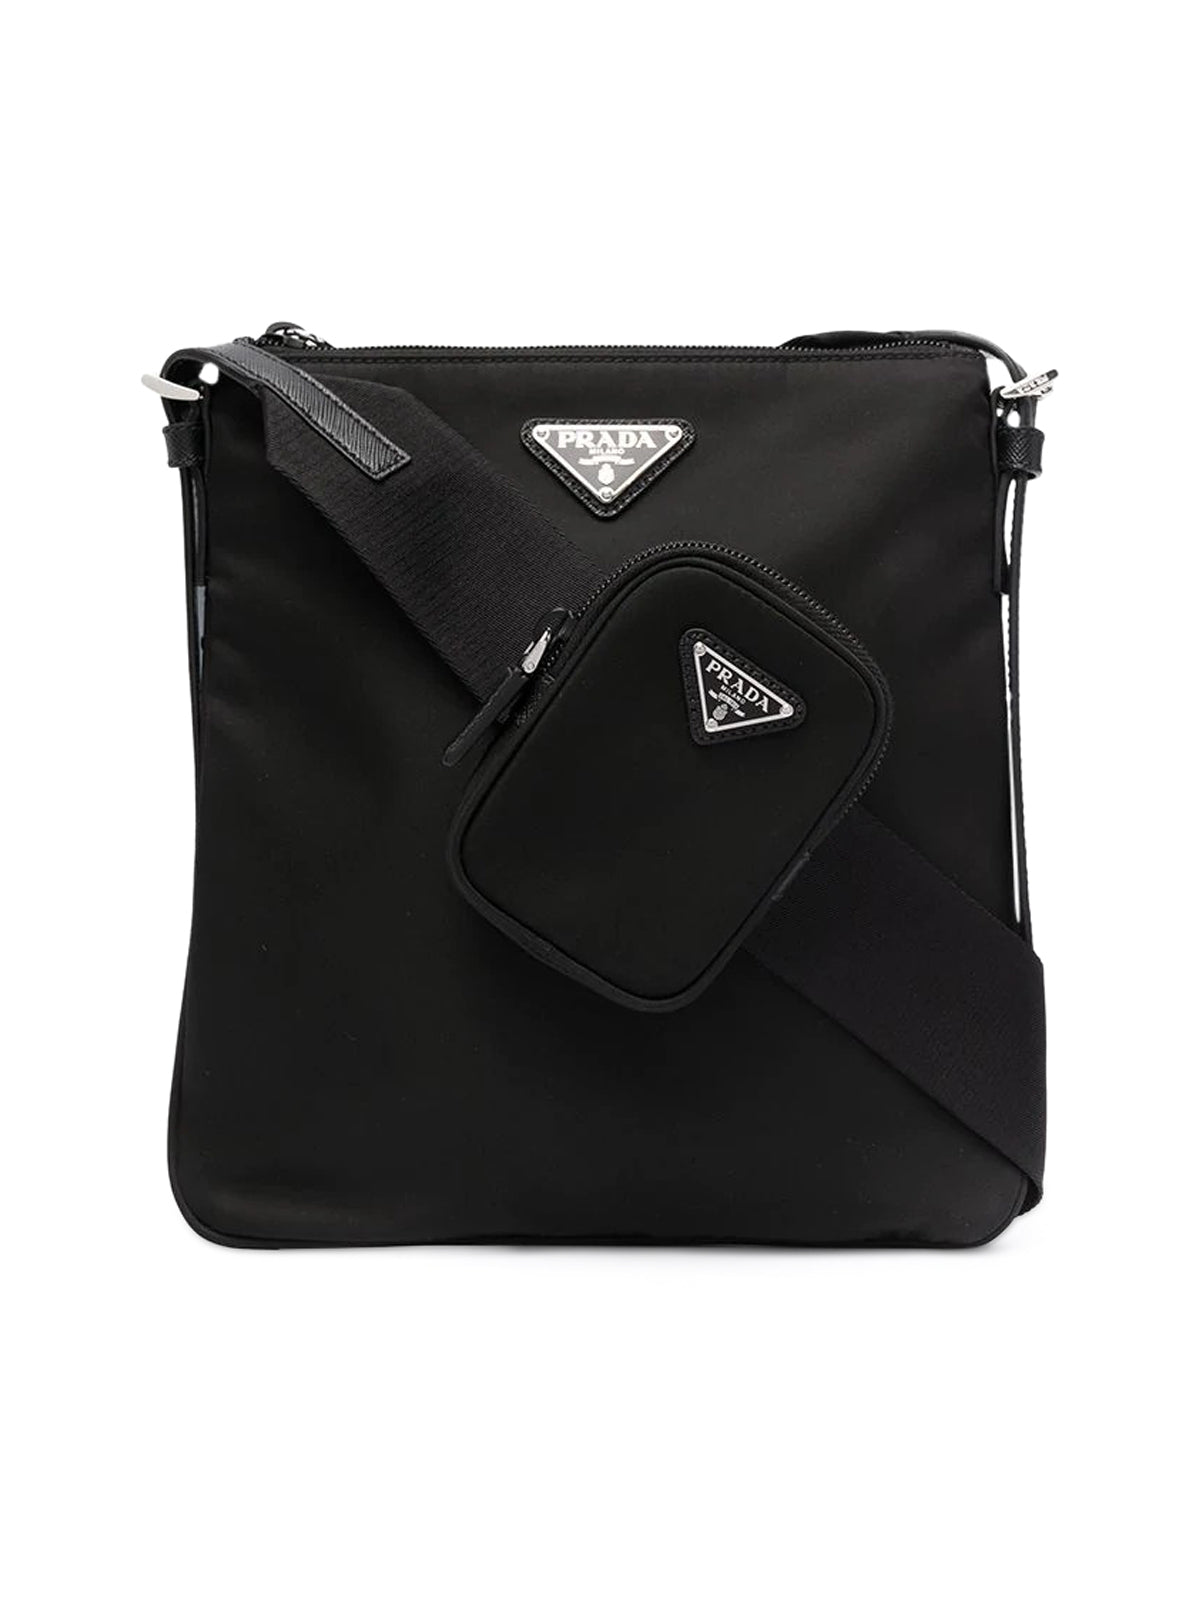 logo-plaque crossbody bag